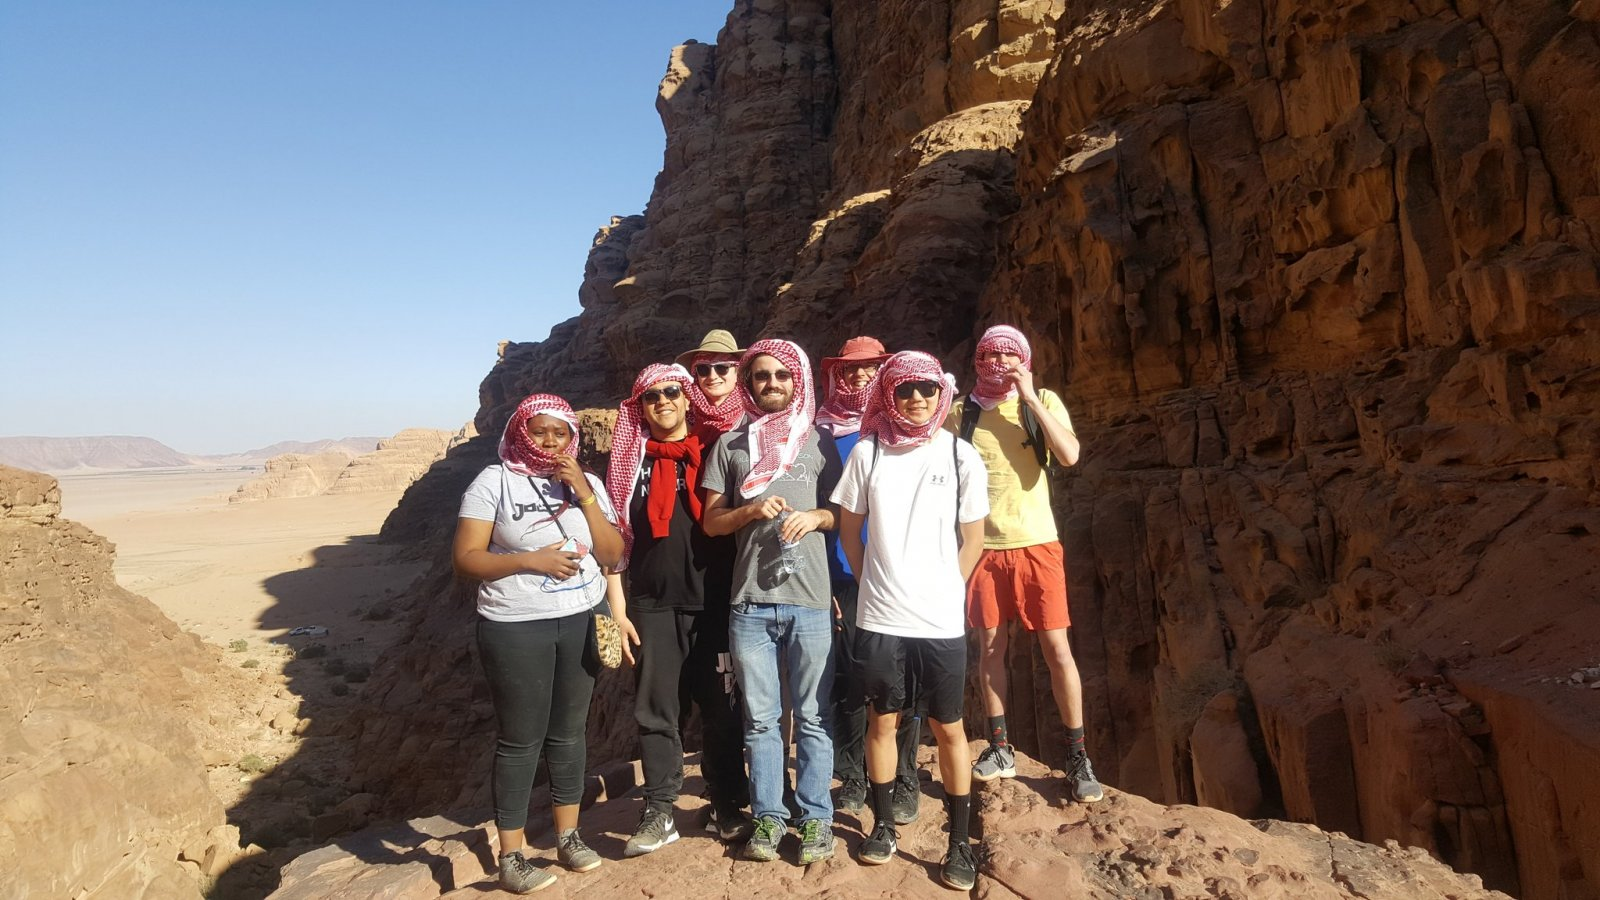 In addition to learning dynamic programming problem-solving strategies at Princess Sumaya University for Technology, the five Nebraska students also visited local world heritage sites and participated in cultural workshops. (Photo from Tareq Daher)